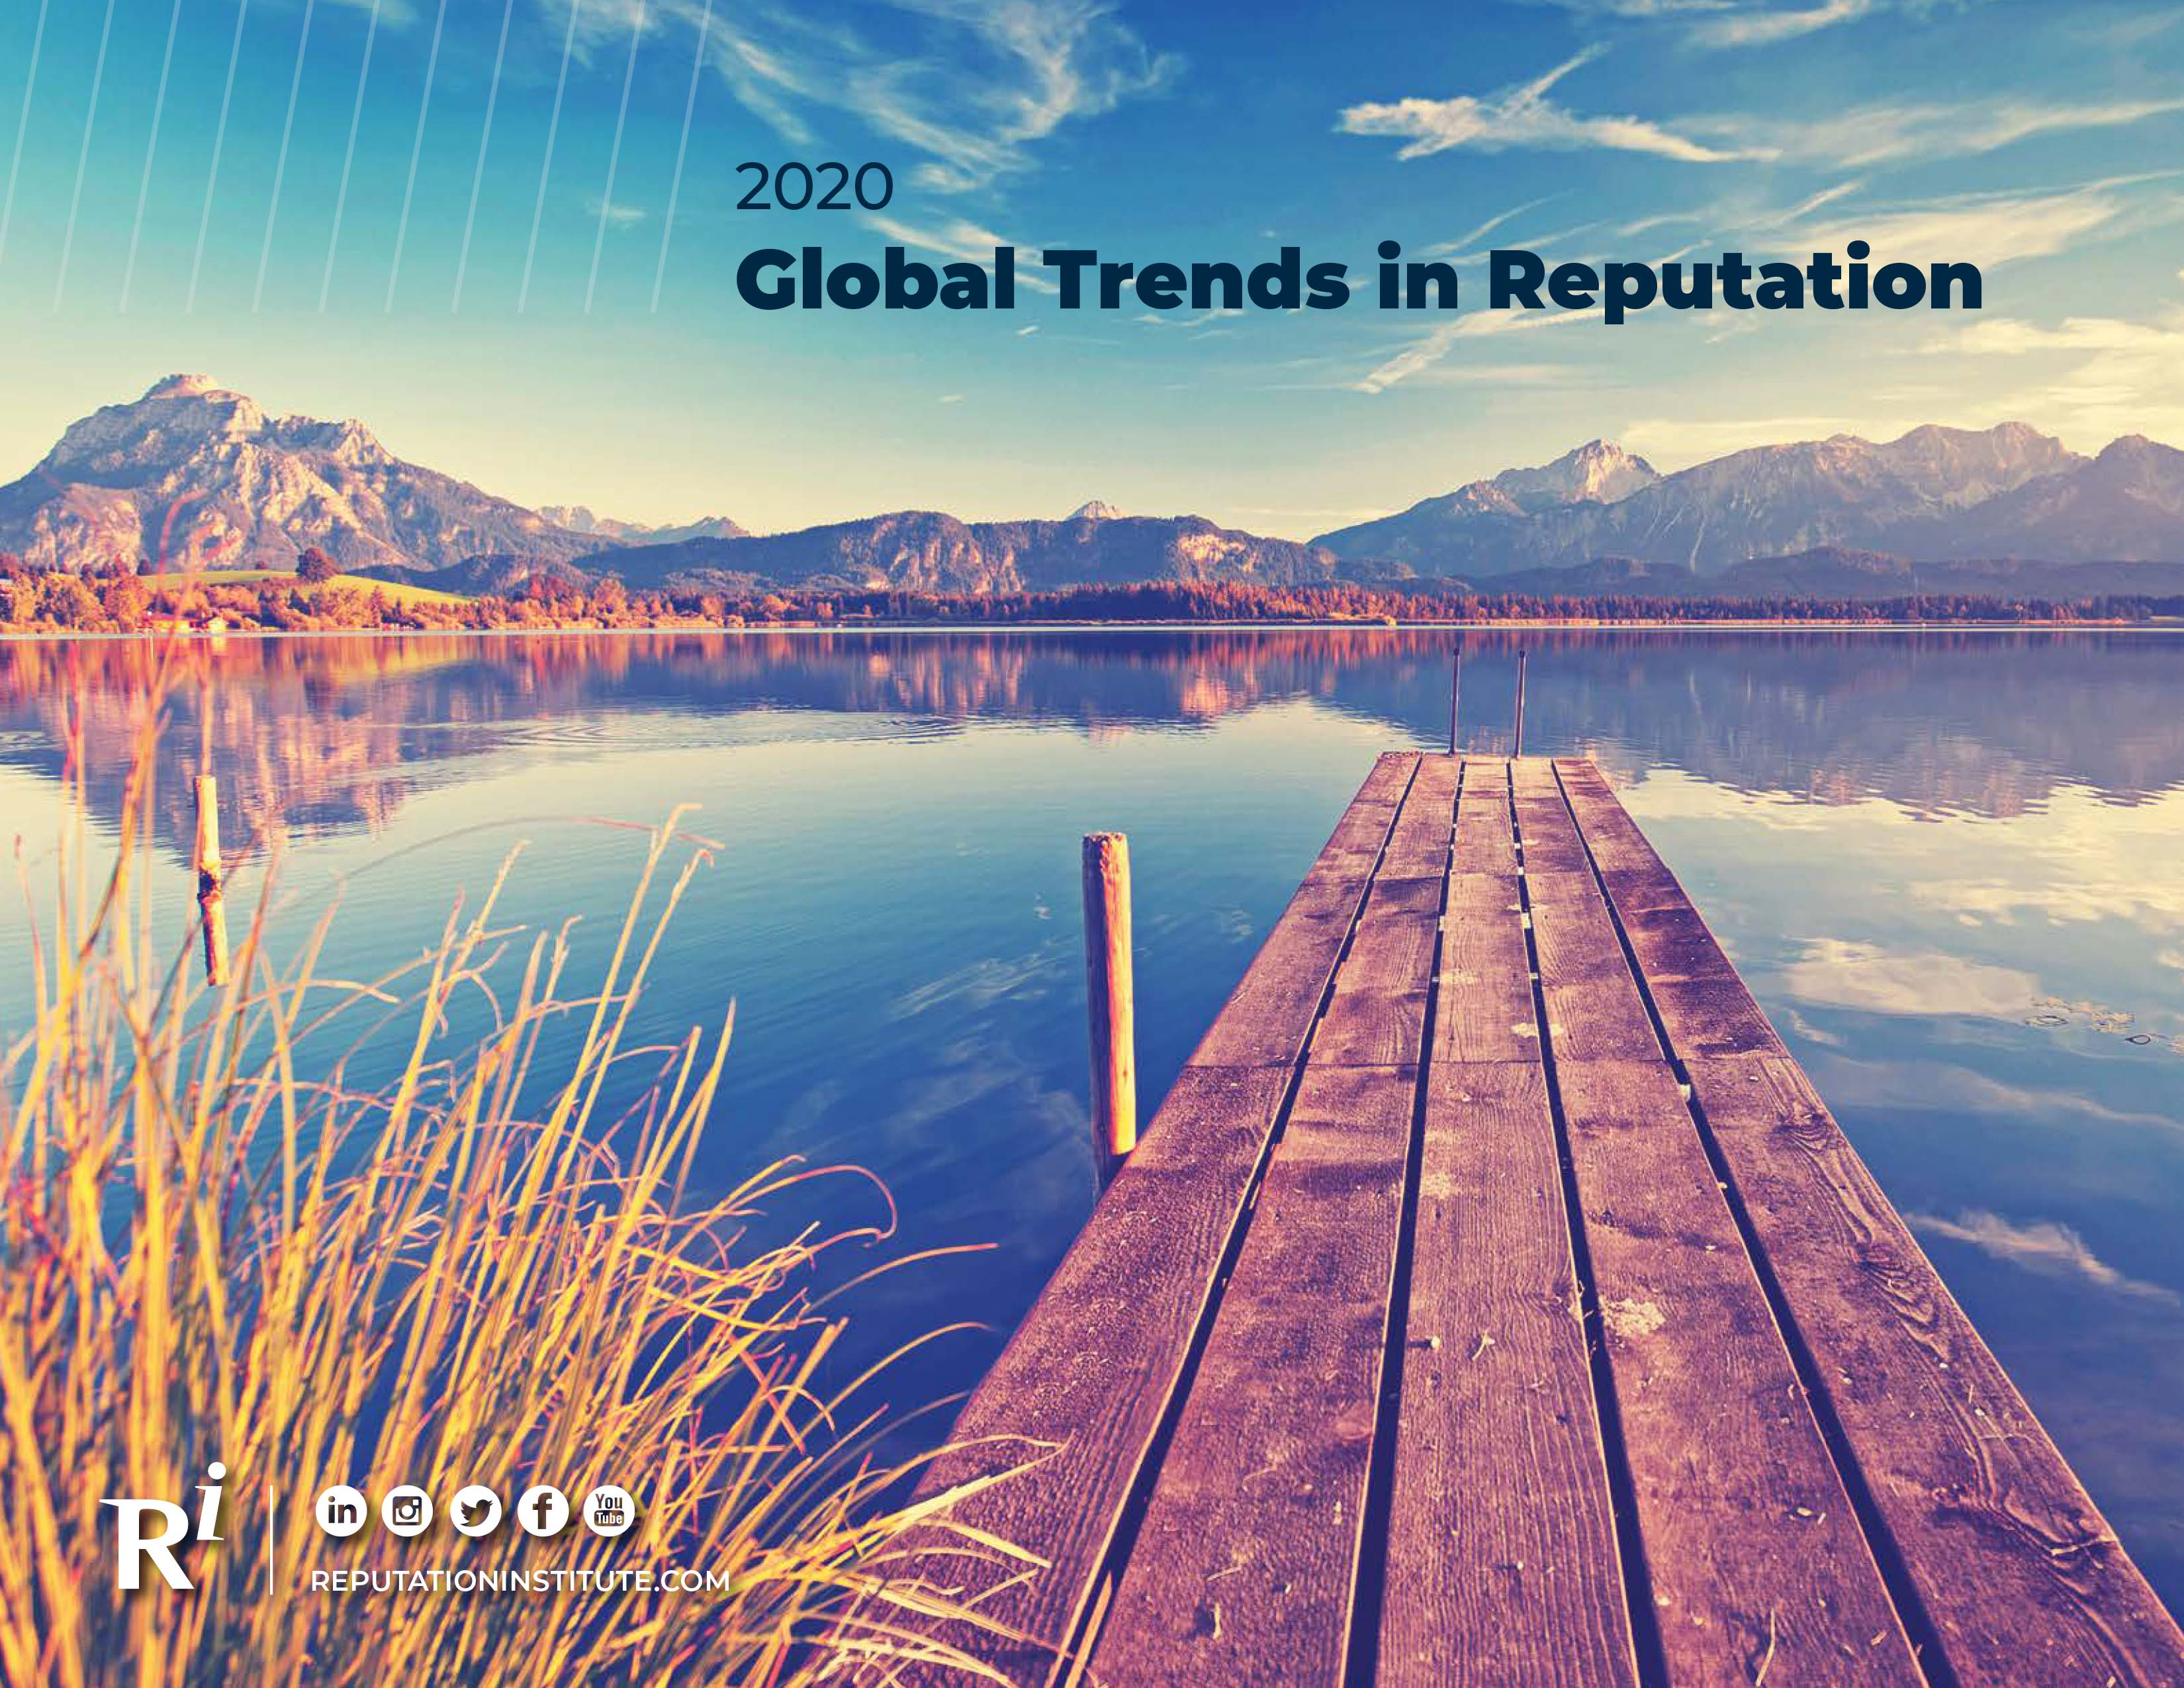 The 10 top reputational trends in 2020 by Reputation Institute